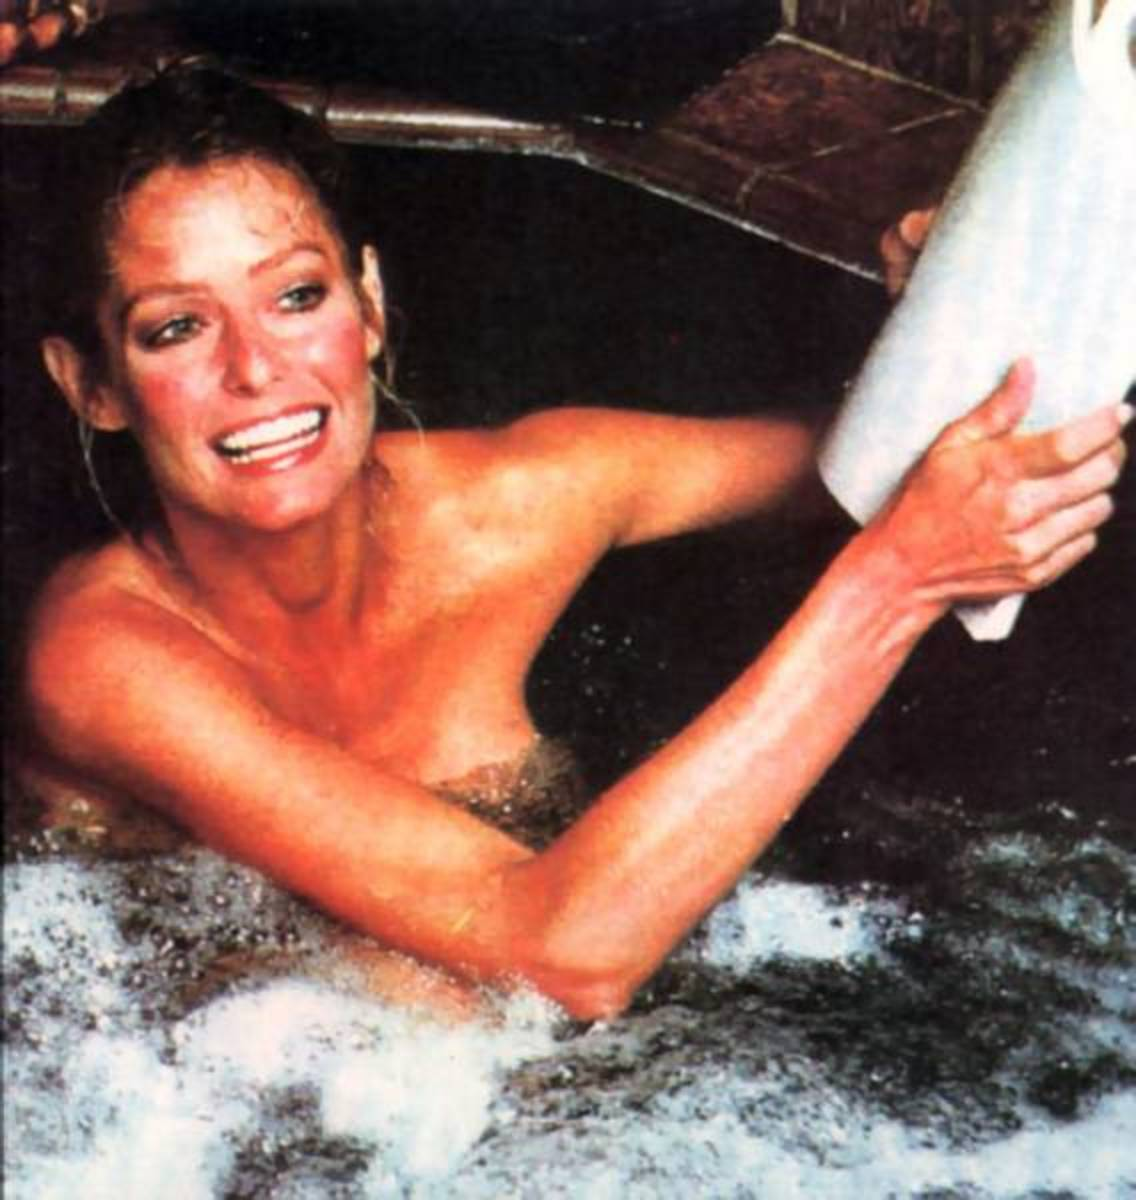 Hot sauna pic of Farrah Fawcett